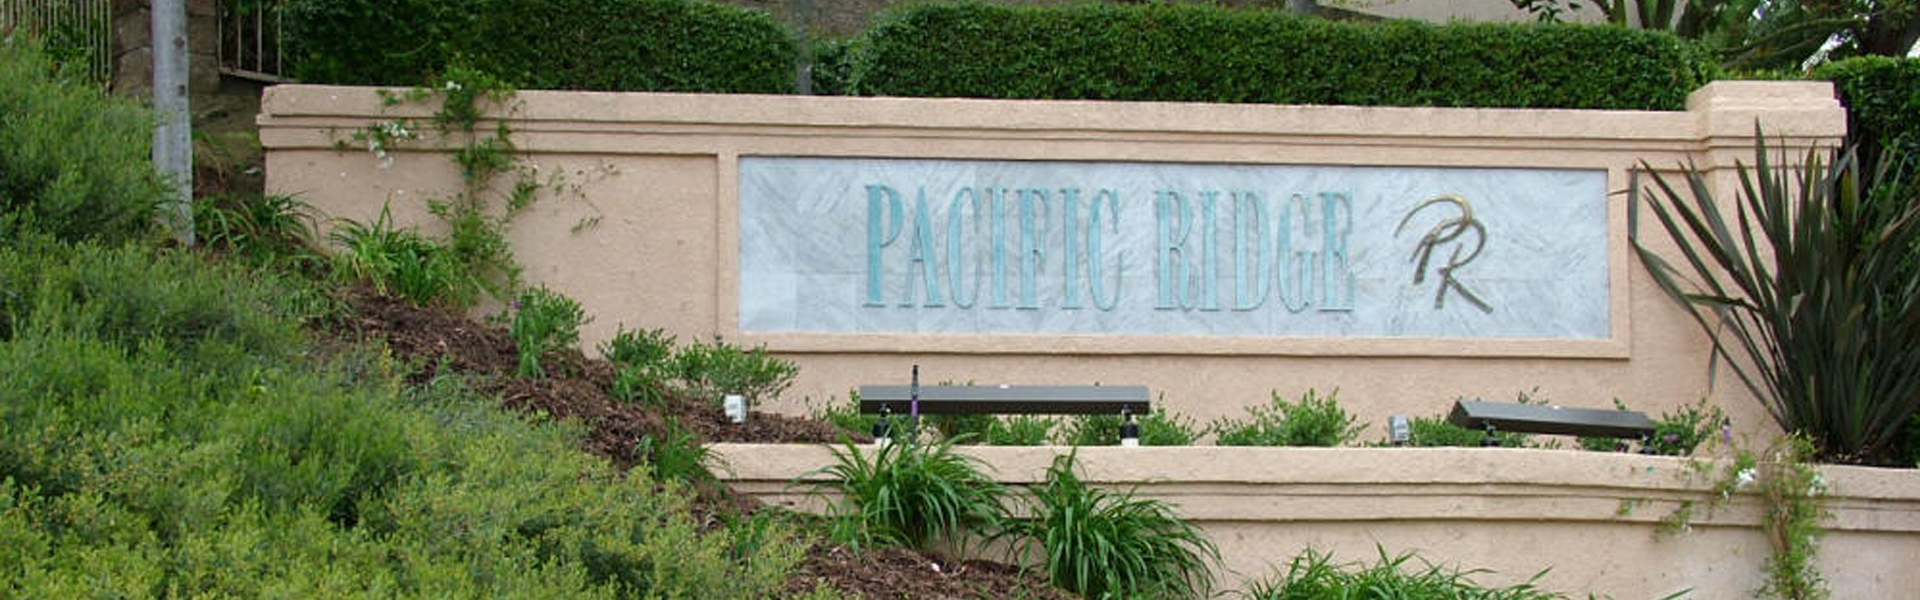 Welcome to Pacific Ridge's Community Website!